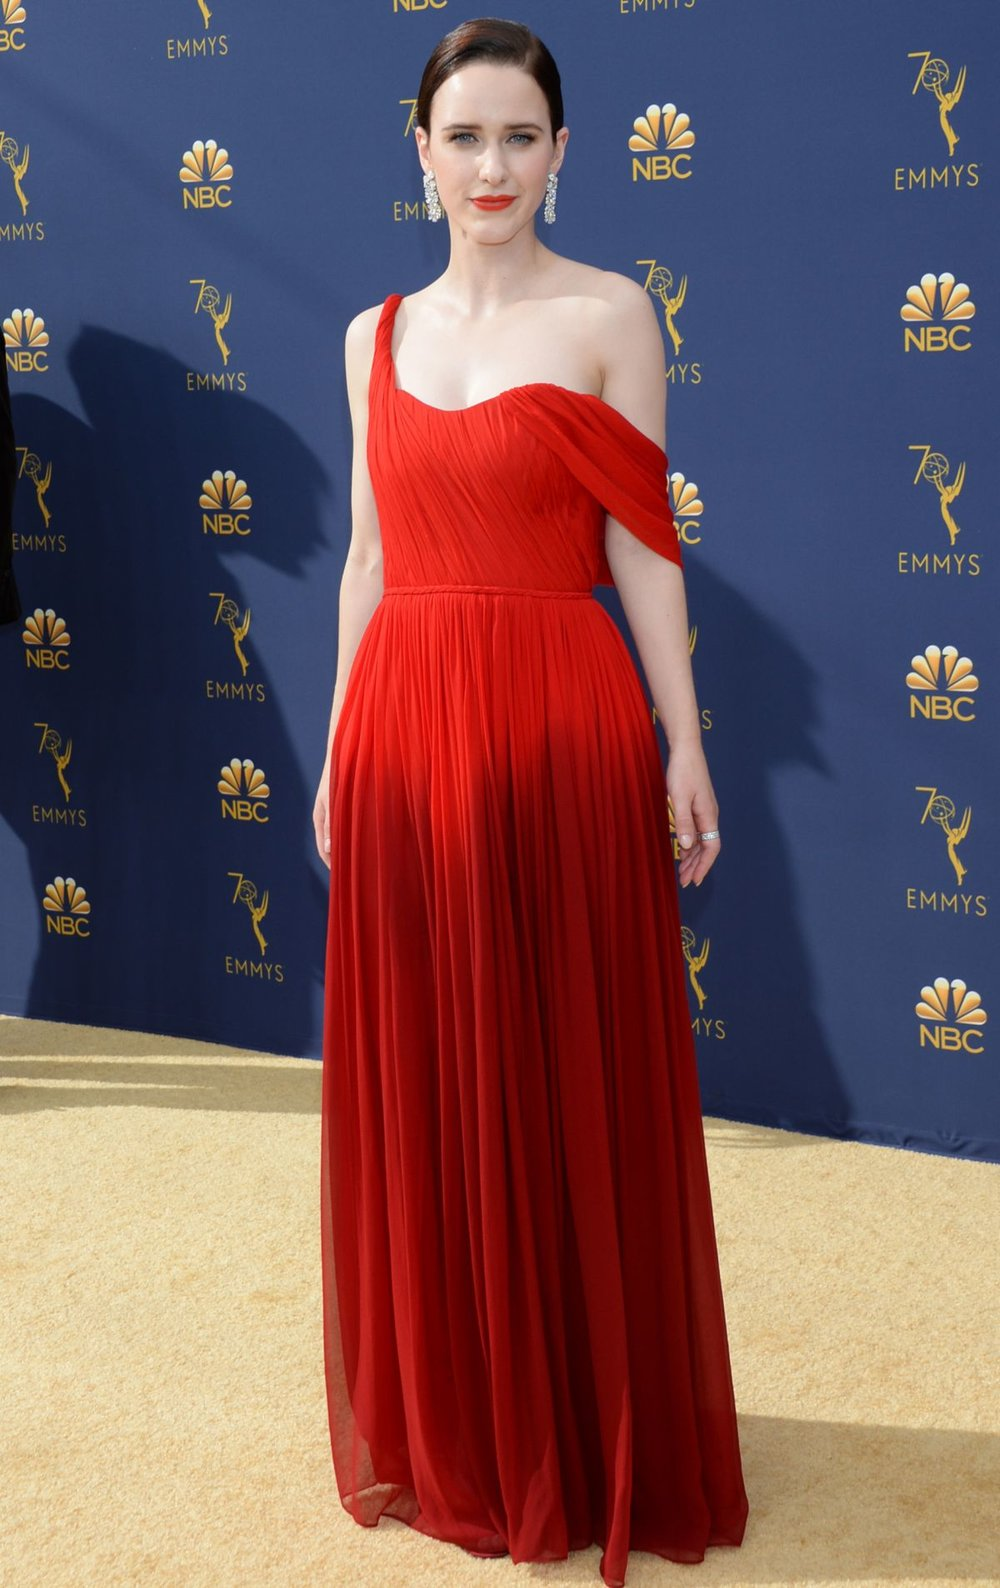 rachel-brosnahan-at-emmy-awards-2018-in-los-angeles-09-17-2018-6.jpg